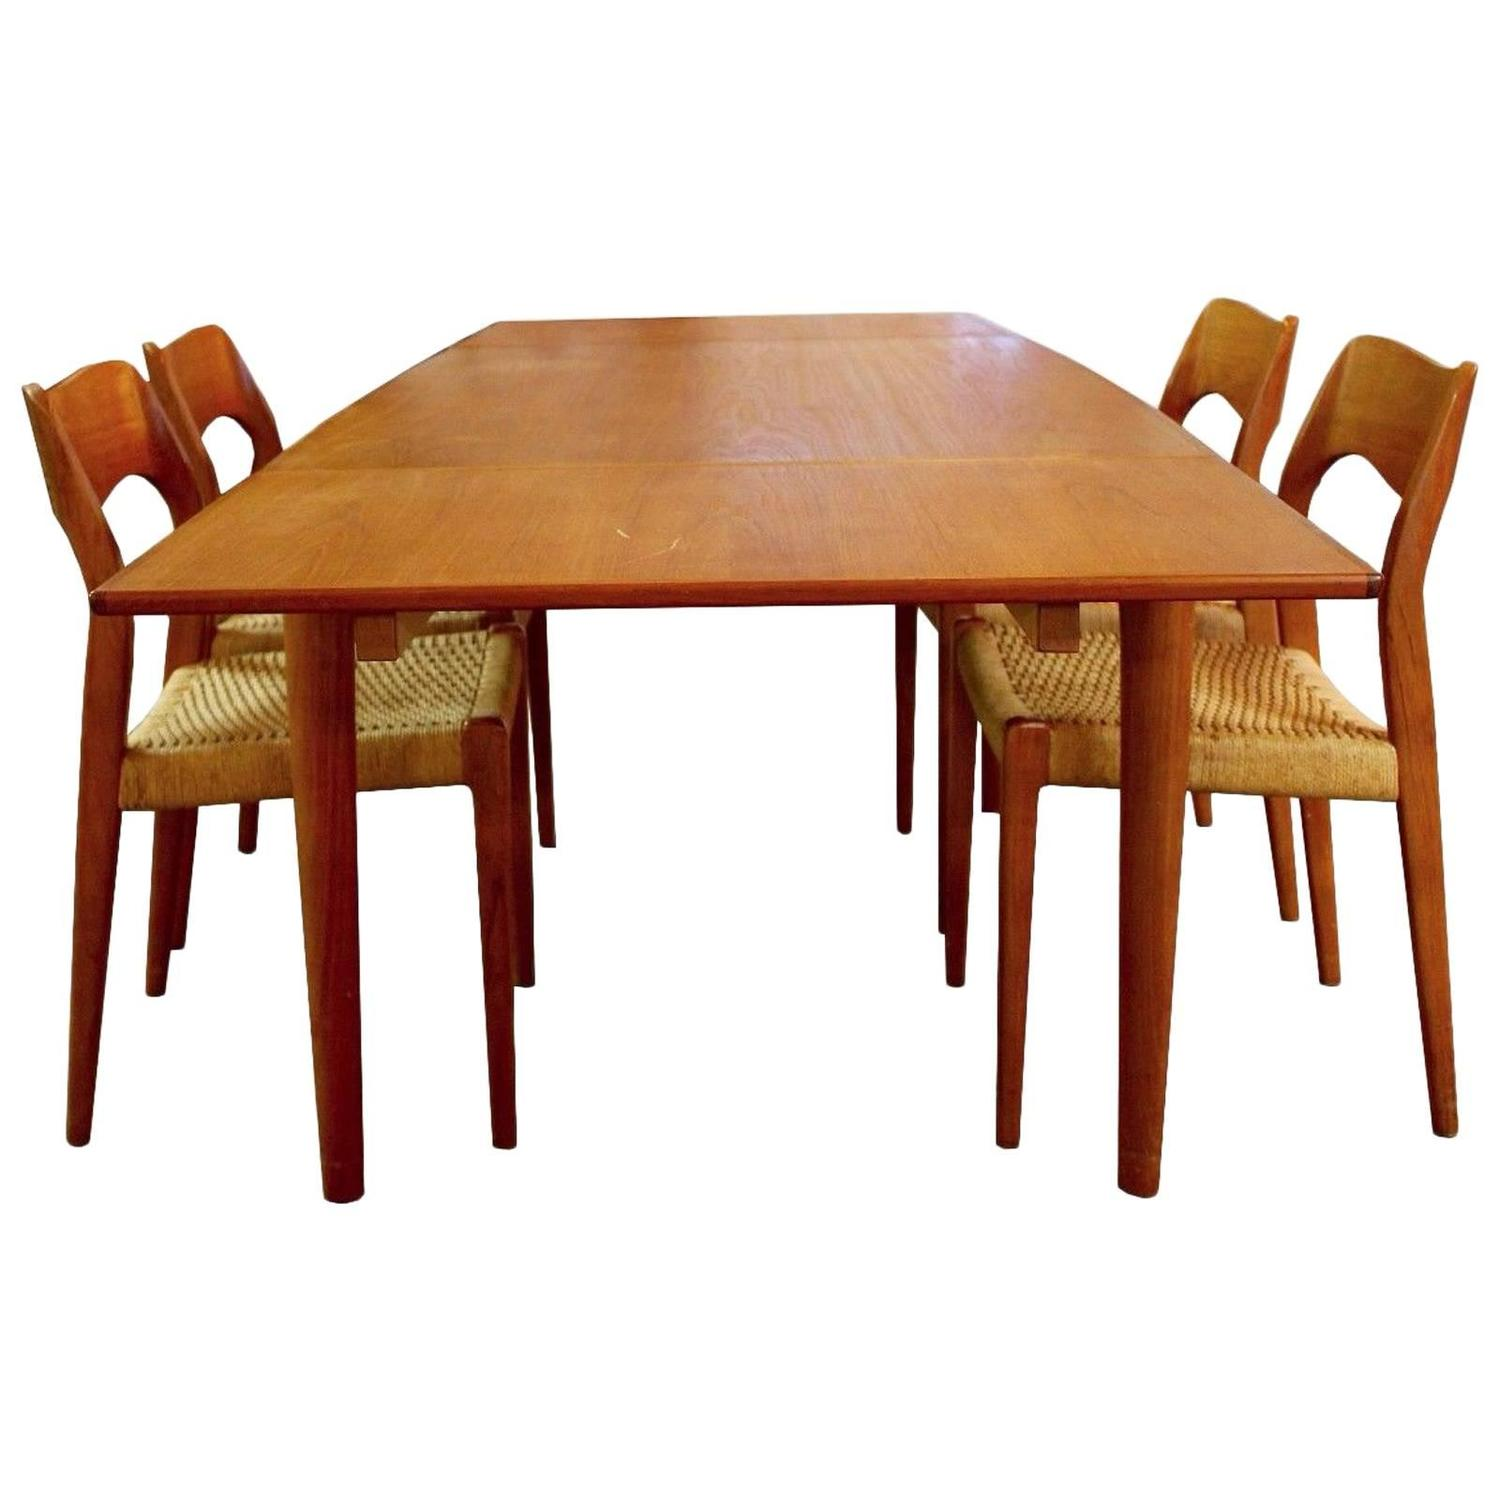 mid century modern danish teak niels moller expandable dining table and 4 chairs at 1stdibs. Black Bedroom Furniture Sets. Home Design Ideas